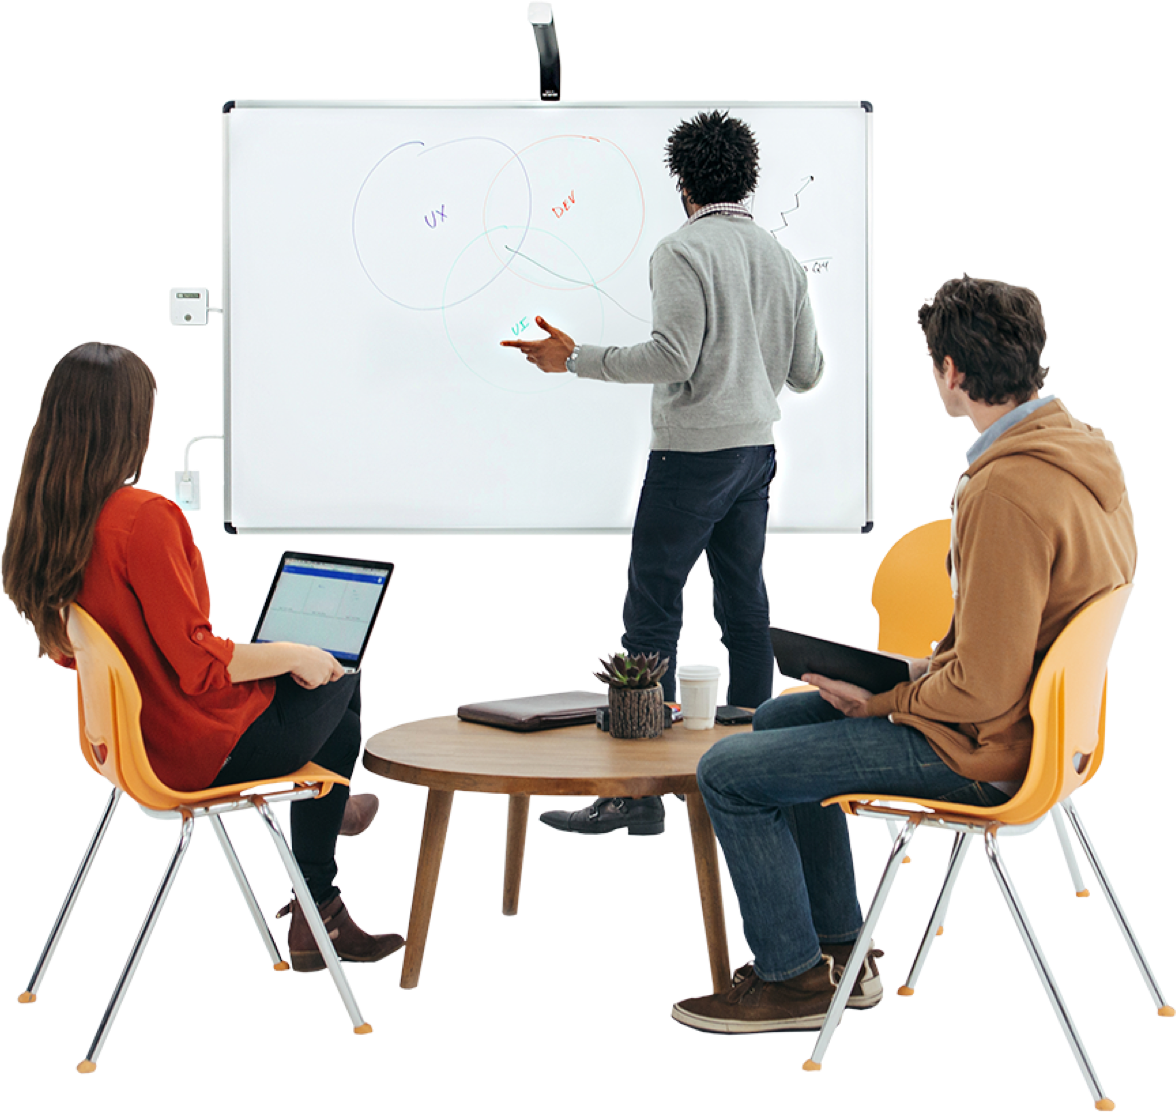 professionals meeting while utilizing a whiteboard and laptop.